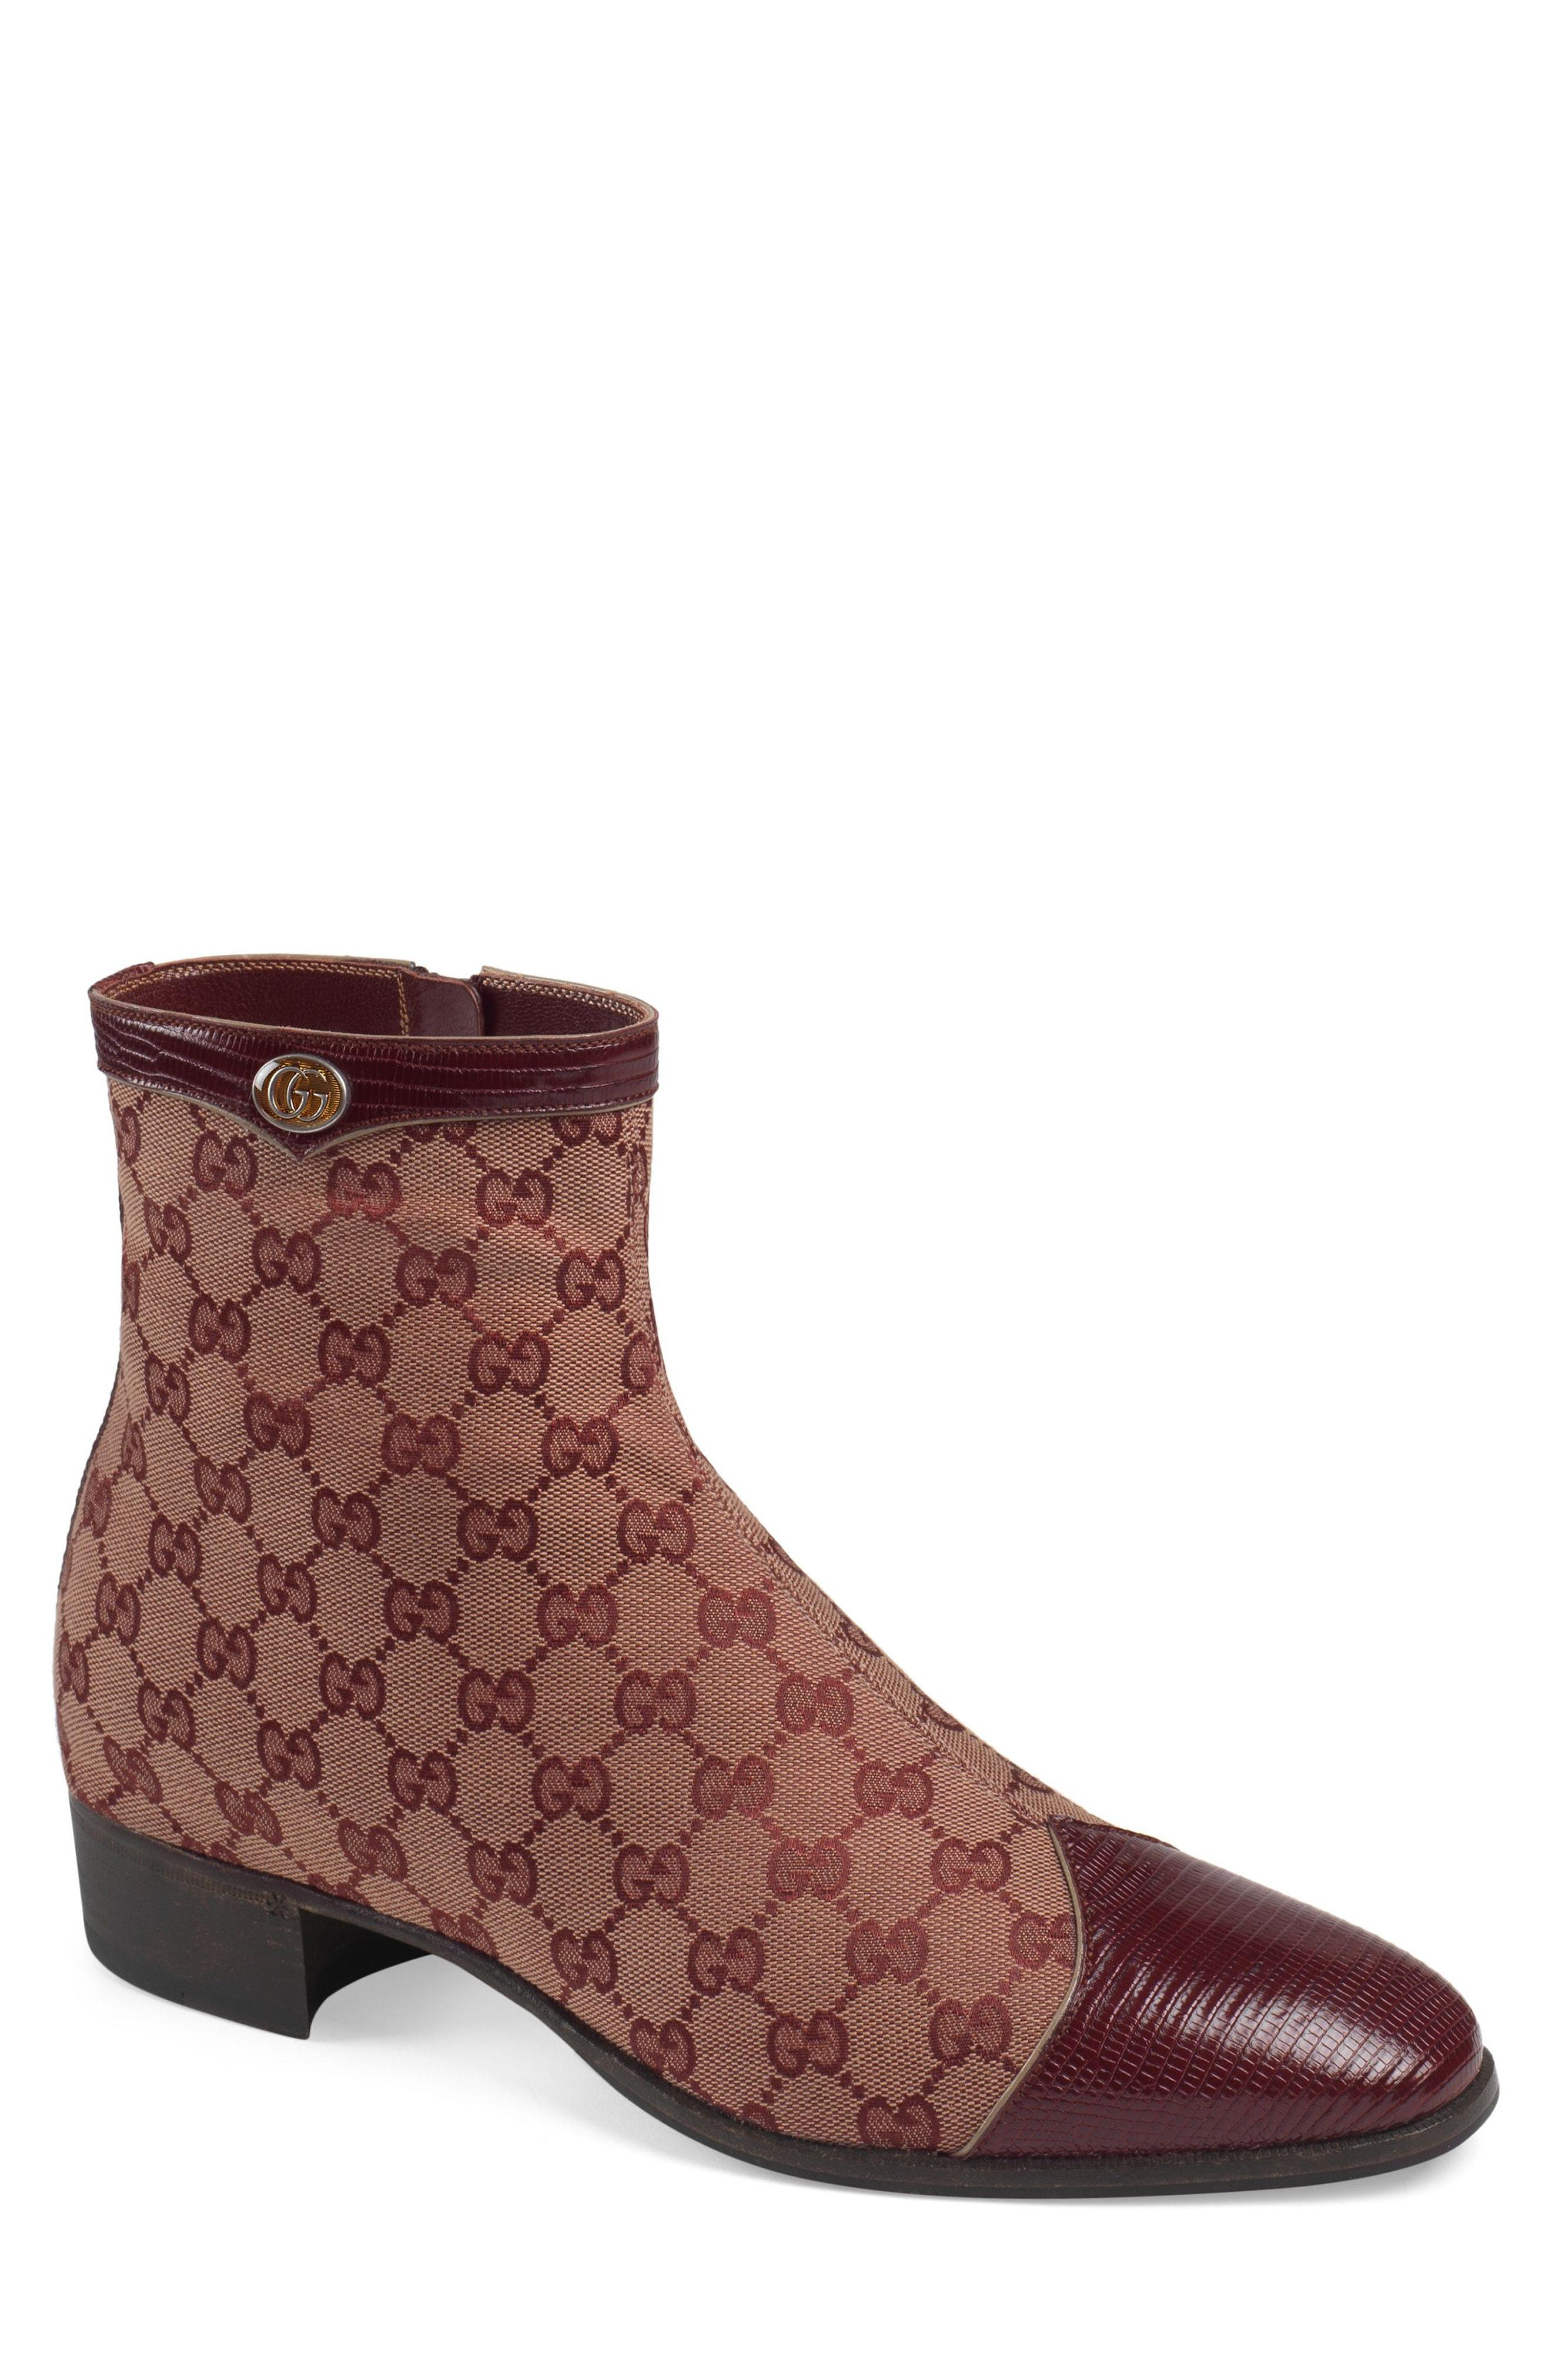 08fc17e5806 Lyst - Gucci Plata Zip Boot in Brown for Men